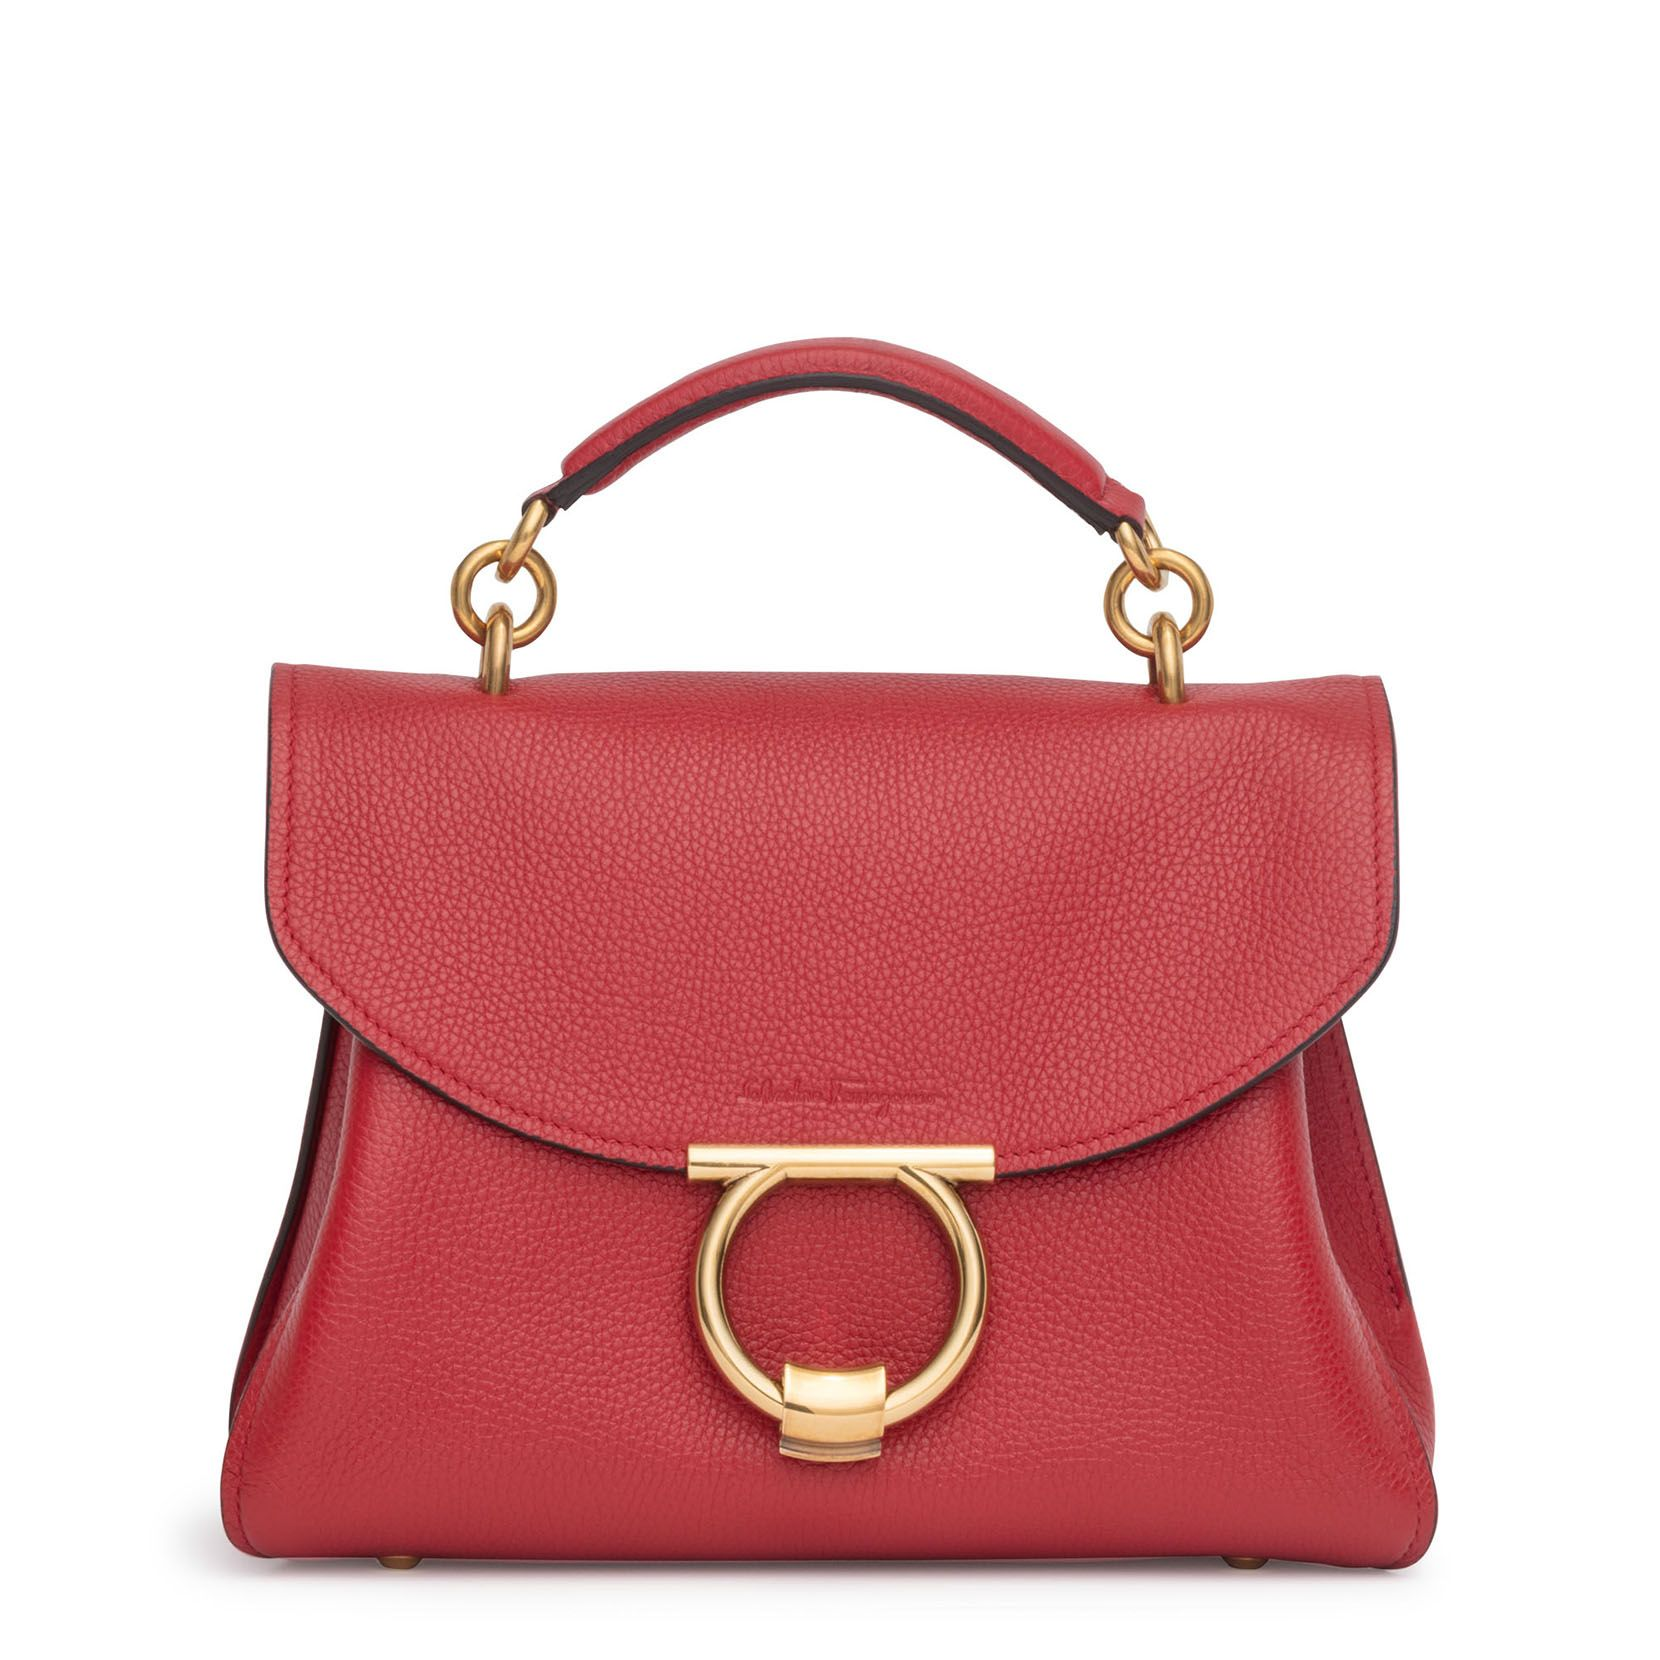 Discover ideas about Messenger Bag. Hermes Brown Clemence Jypsiere 37 - LOVE  that BAG - Preowned Authentic Designer Handbags ... 893d2876b14ee